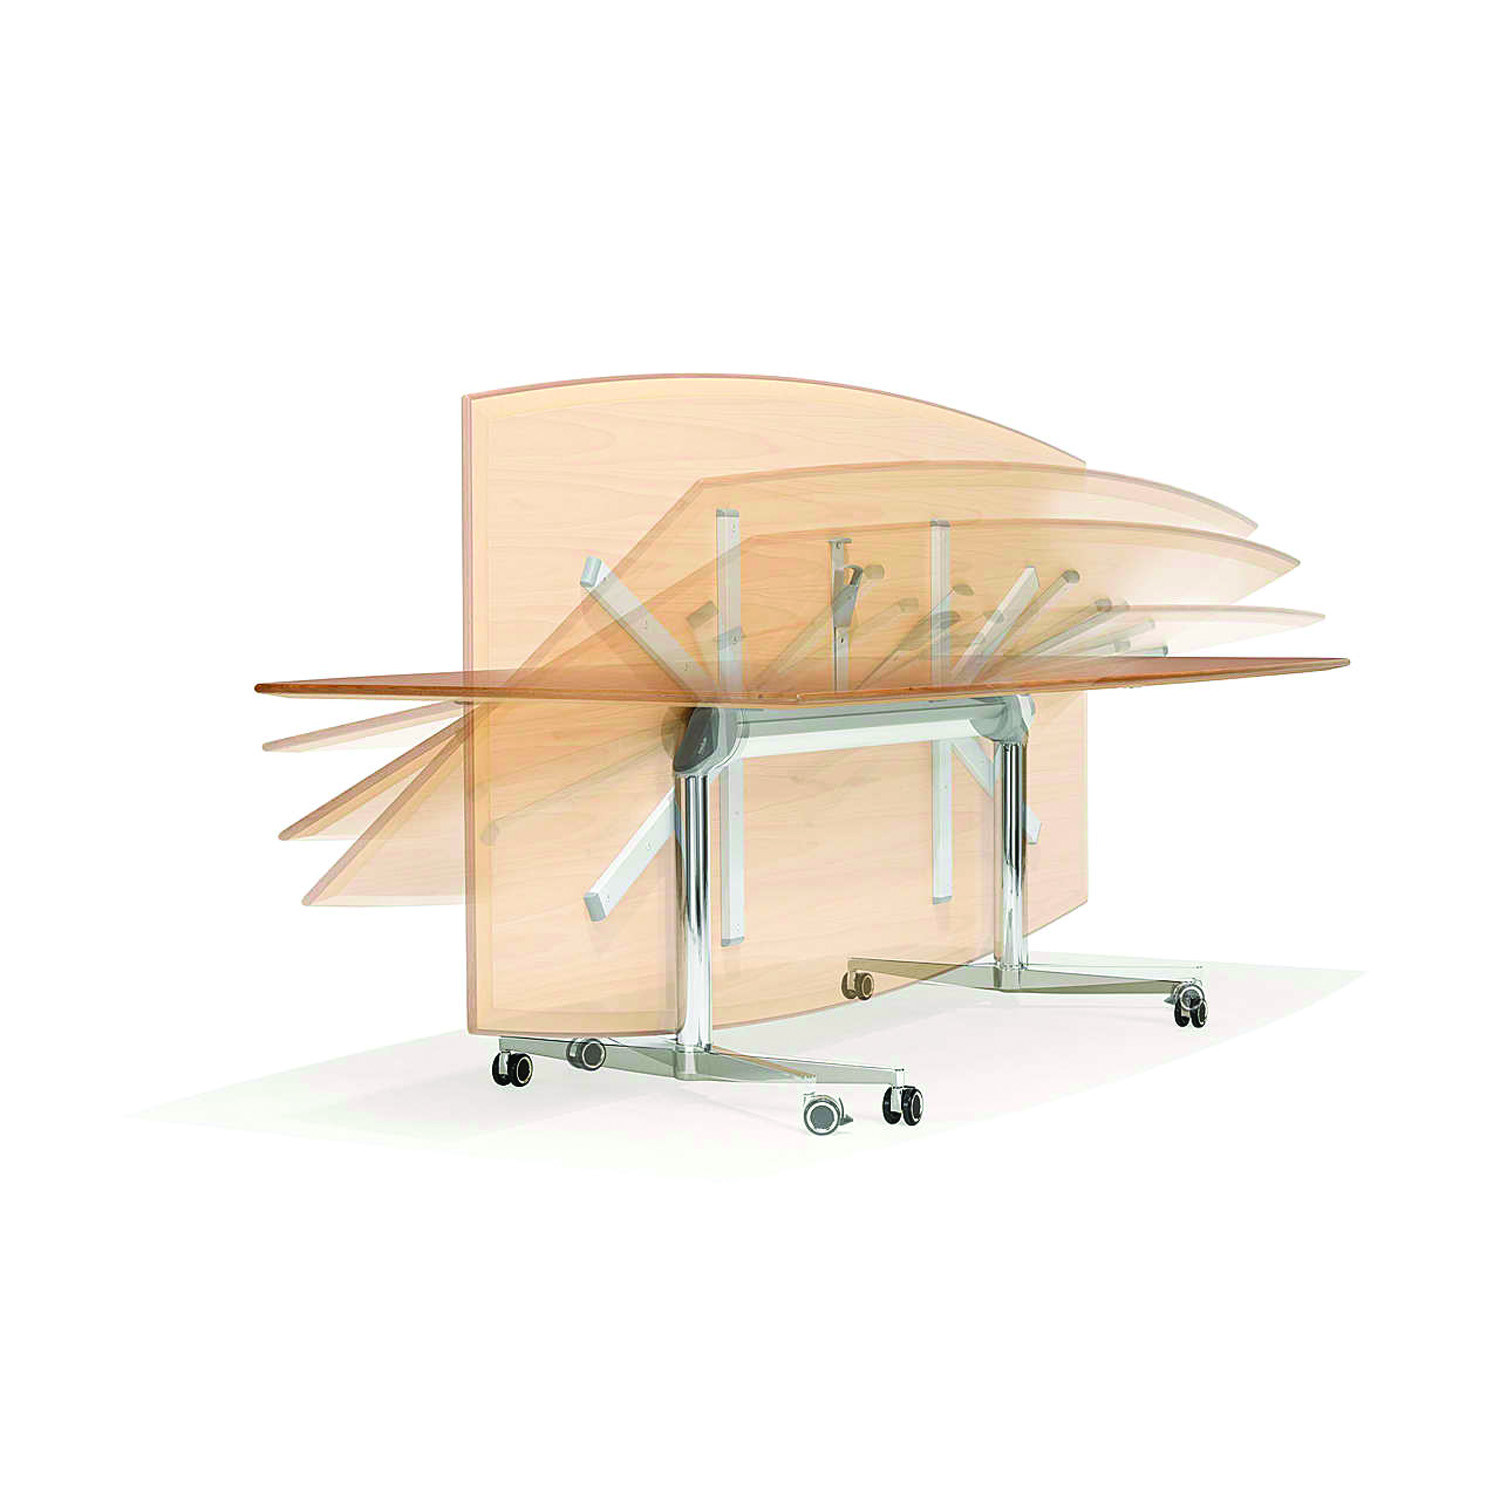 6000 San_Siro Folding Tables